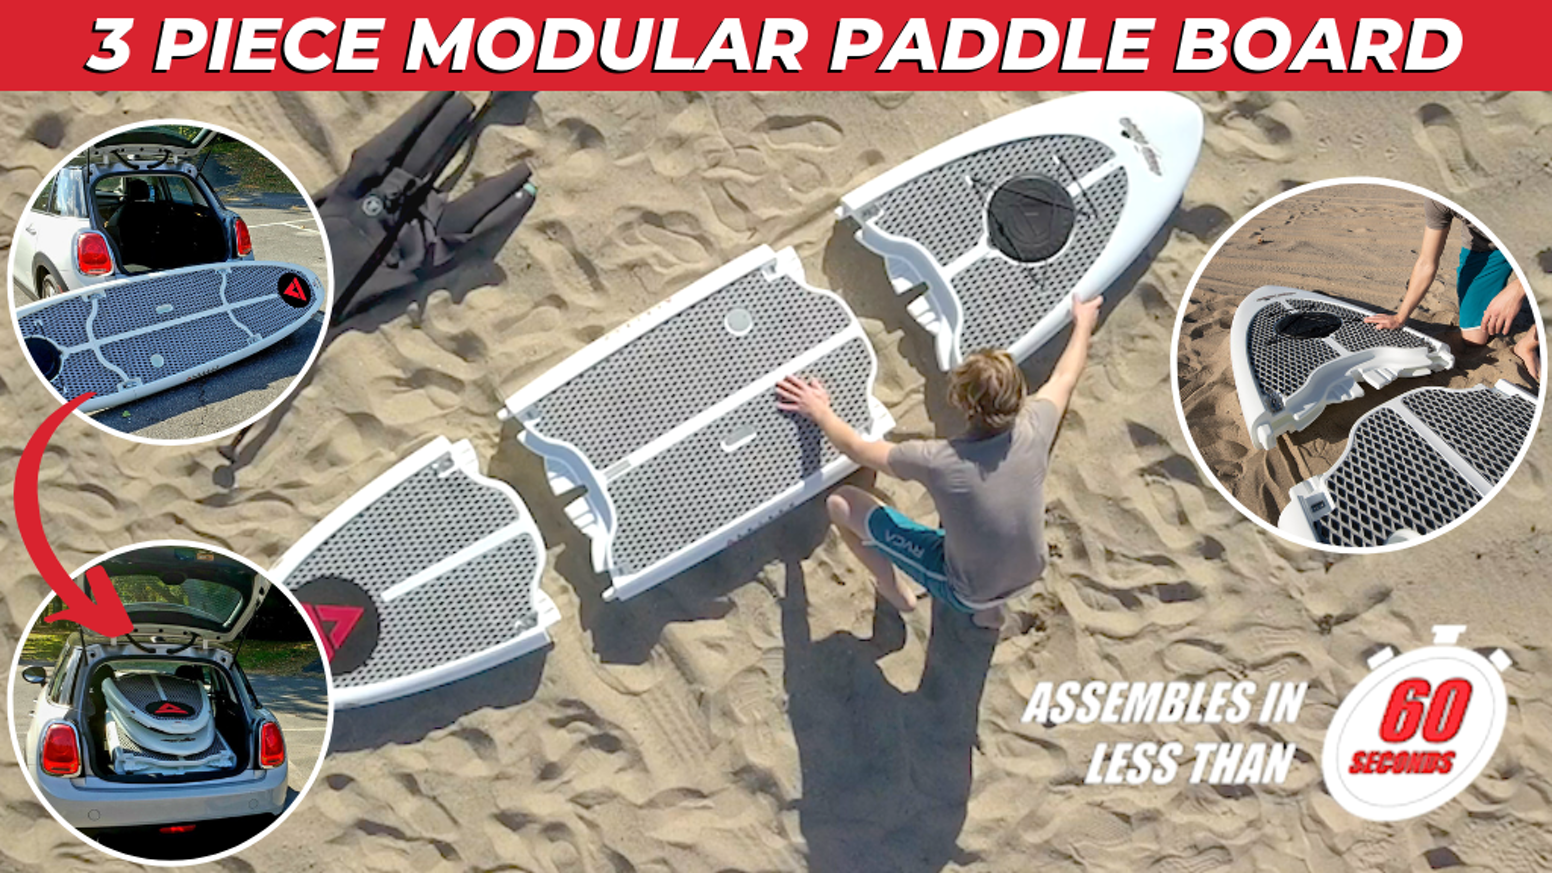 Three-Piece Modular Stand Up Paddle Board (SUP) with performance, convenience, portability, and recyclability. Check out Easy Eddy today!